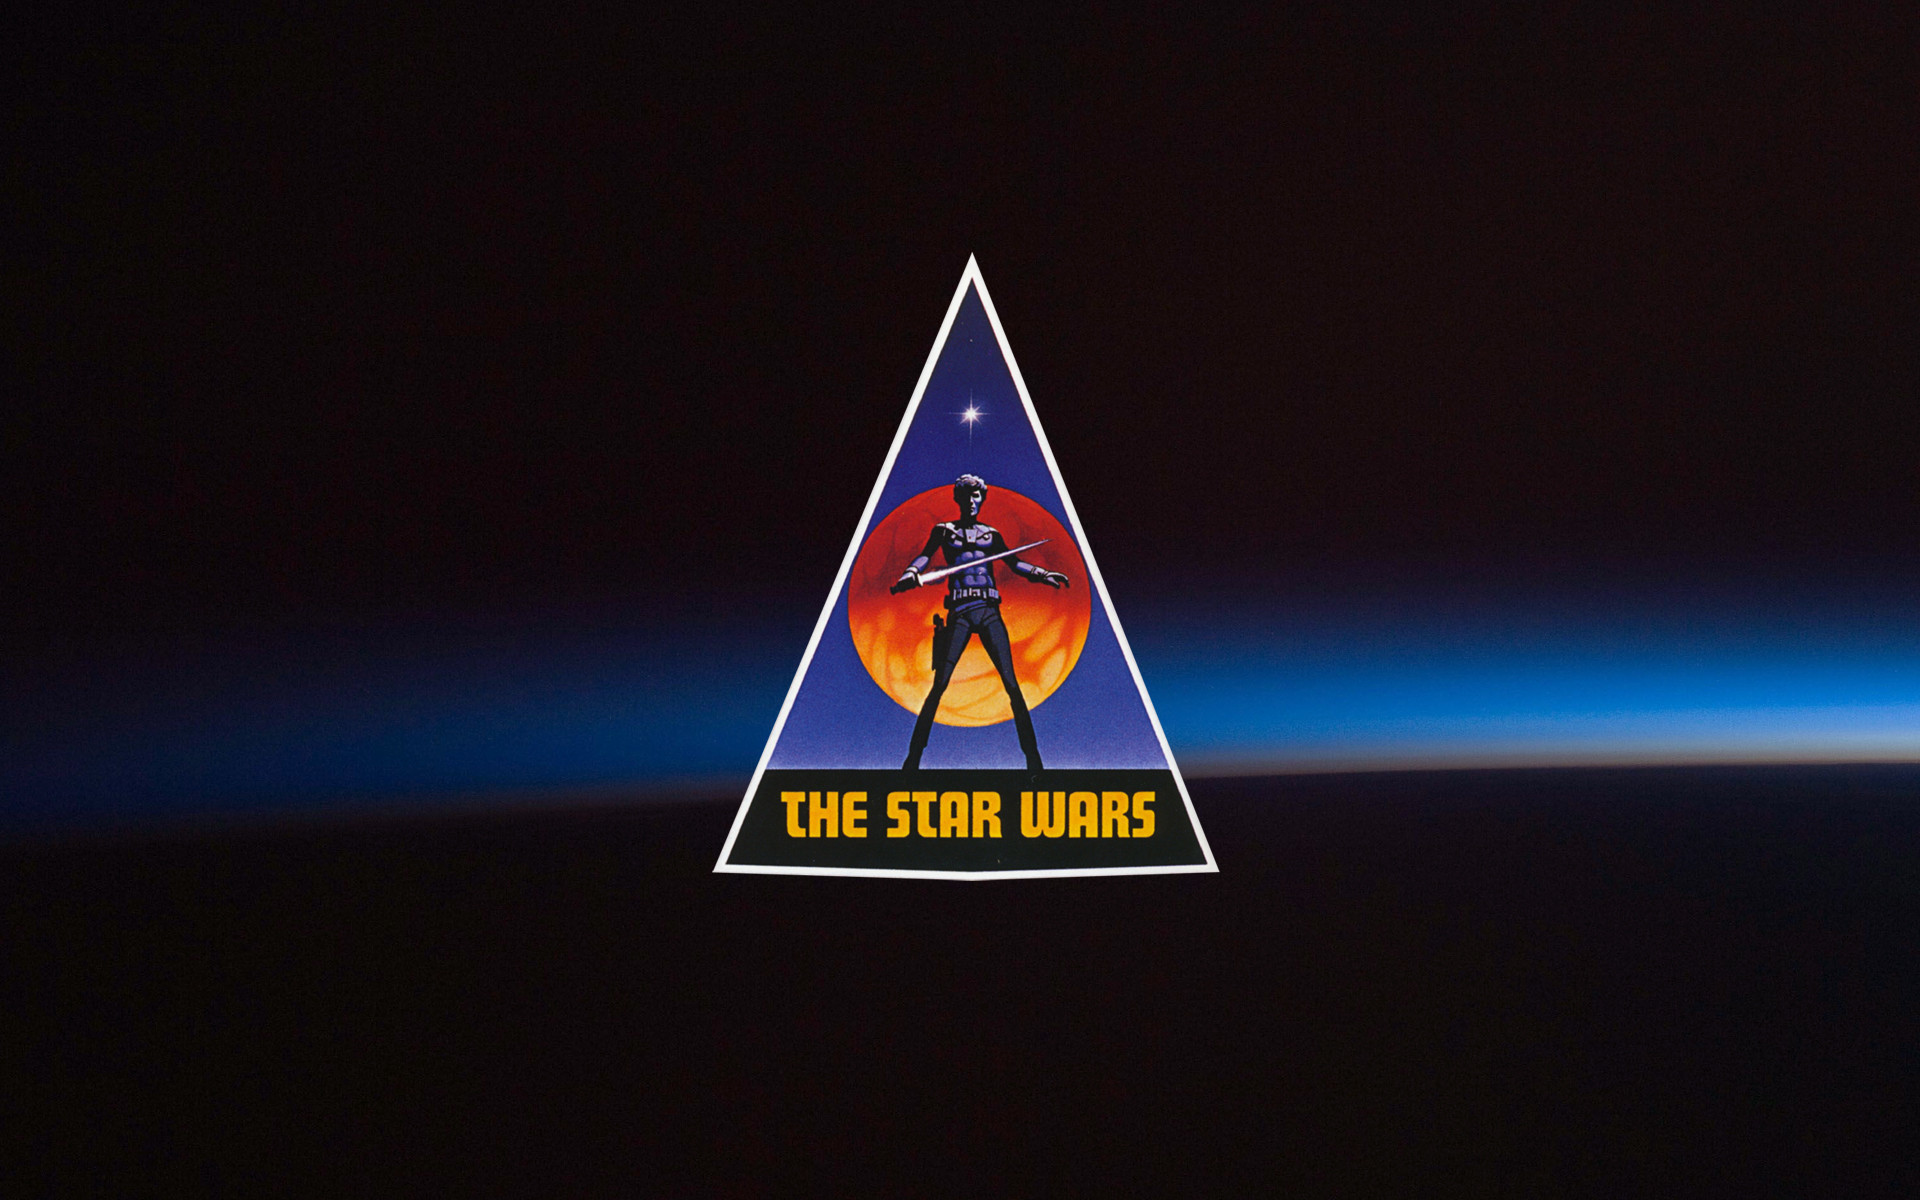 The Star Wars original logo. [1920×1200] (couldn't find a wallpaper size of  this so I made one myself) …